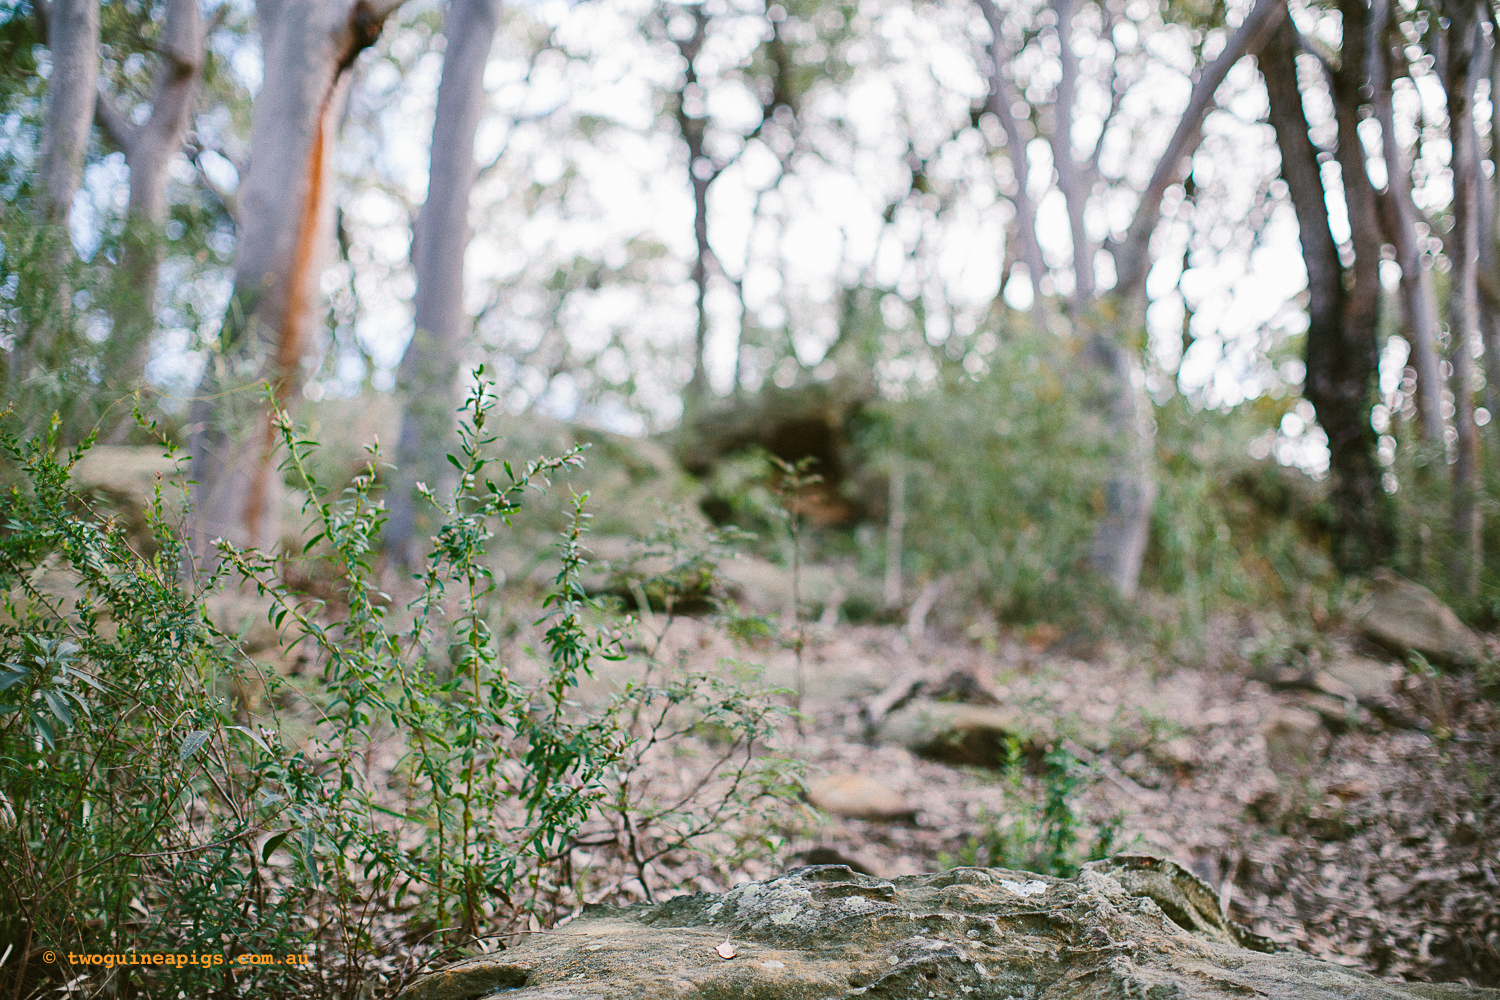 twoguineapigs_pet_photography_berry_island_reserve_wollstonecraft_location_scout_1500-34.jpg